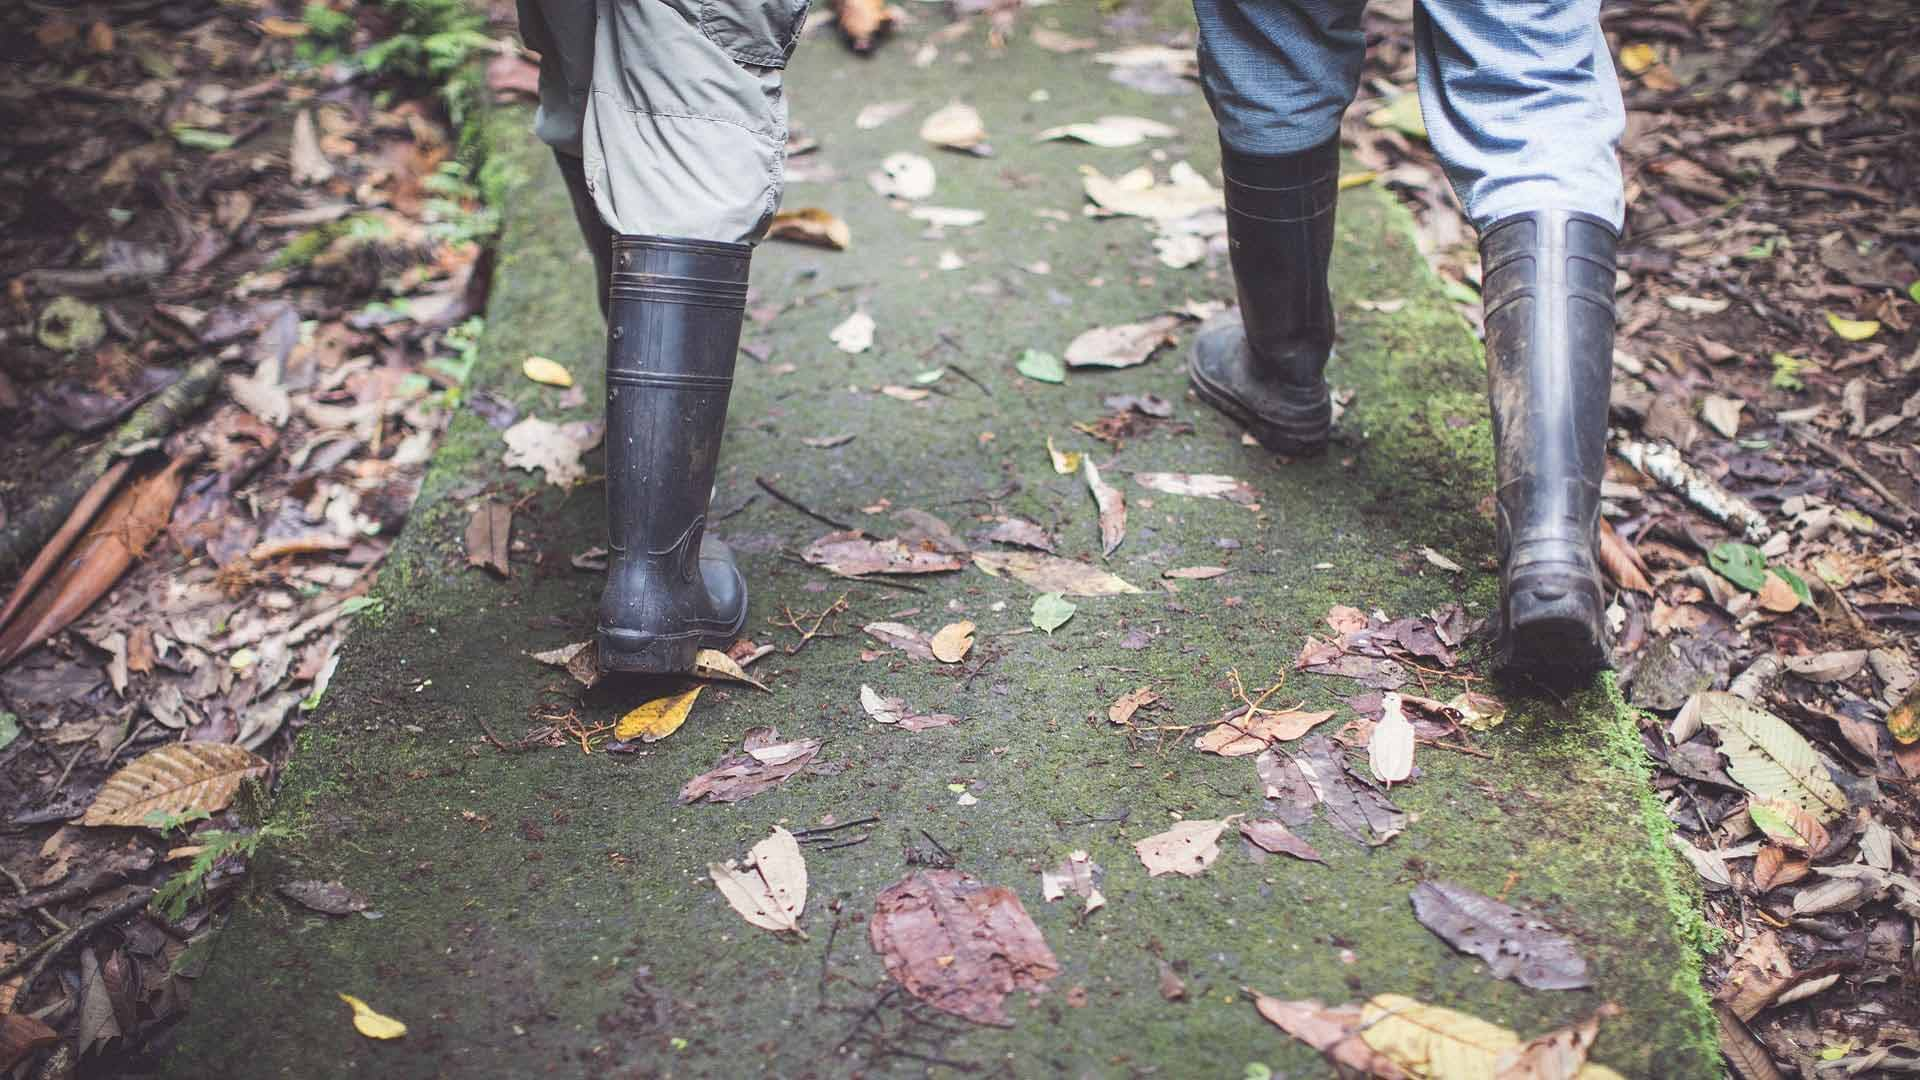 People walking along a path in the rain forest with just their rubber boots showing